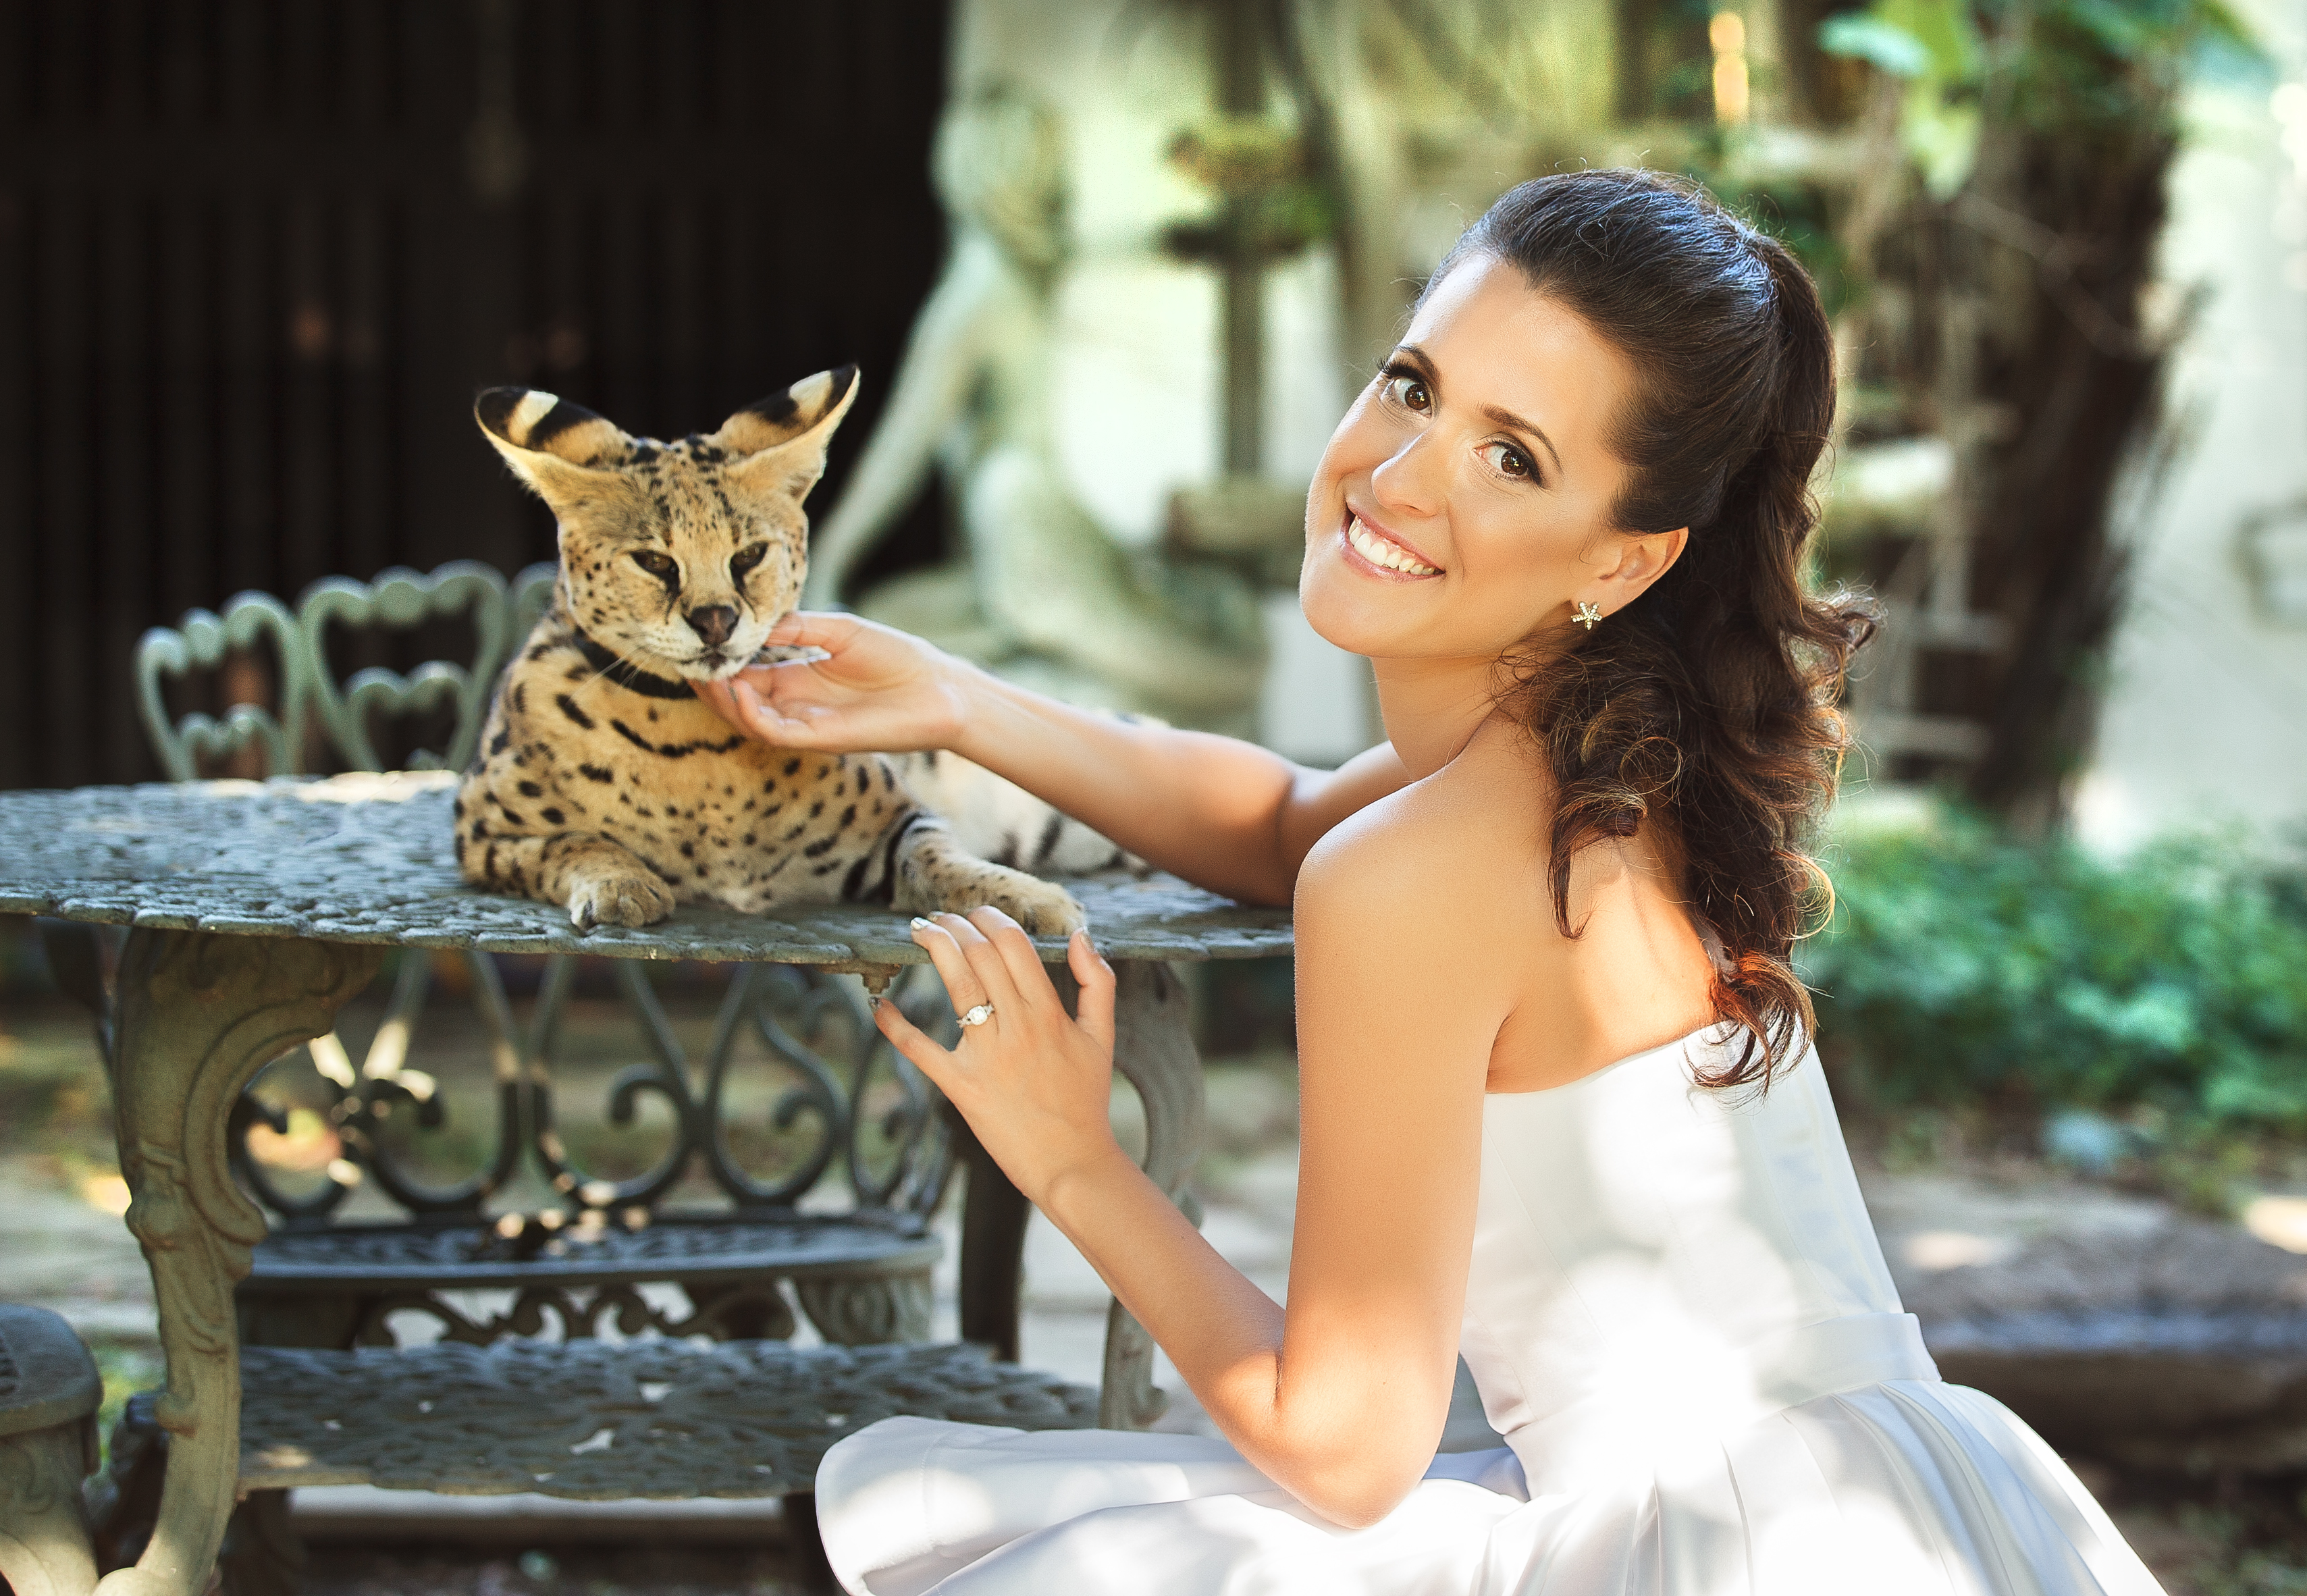 wedding photo shoot shoot ideas with animals zoo